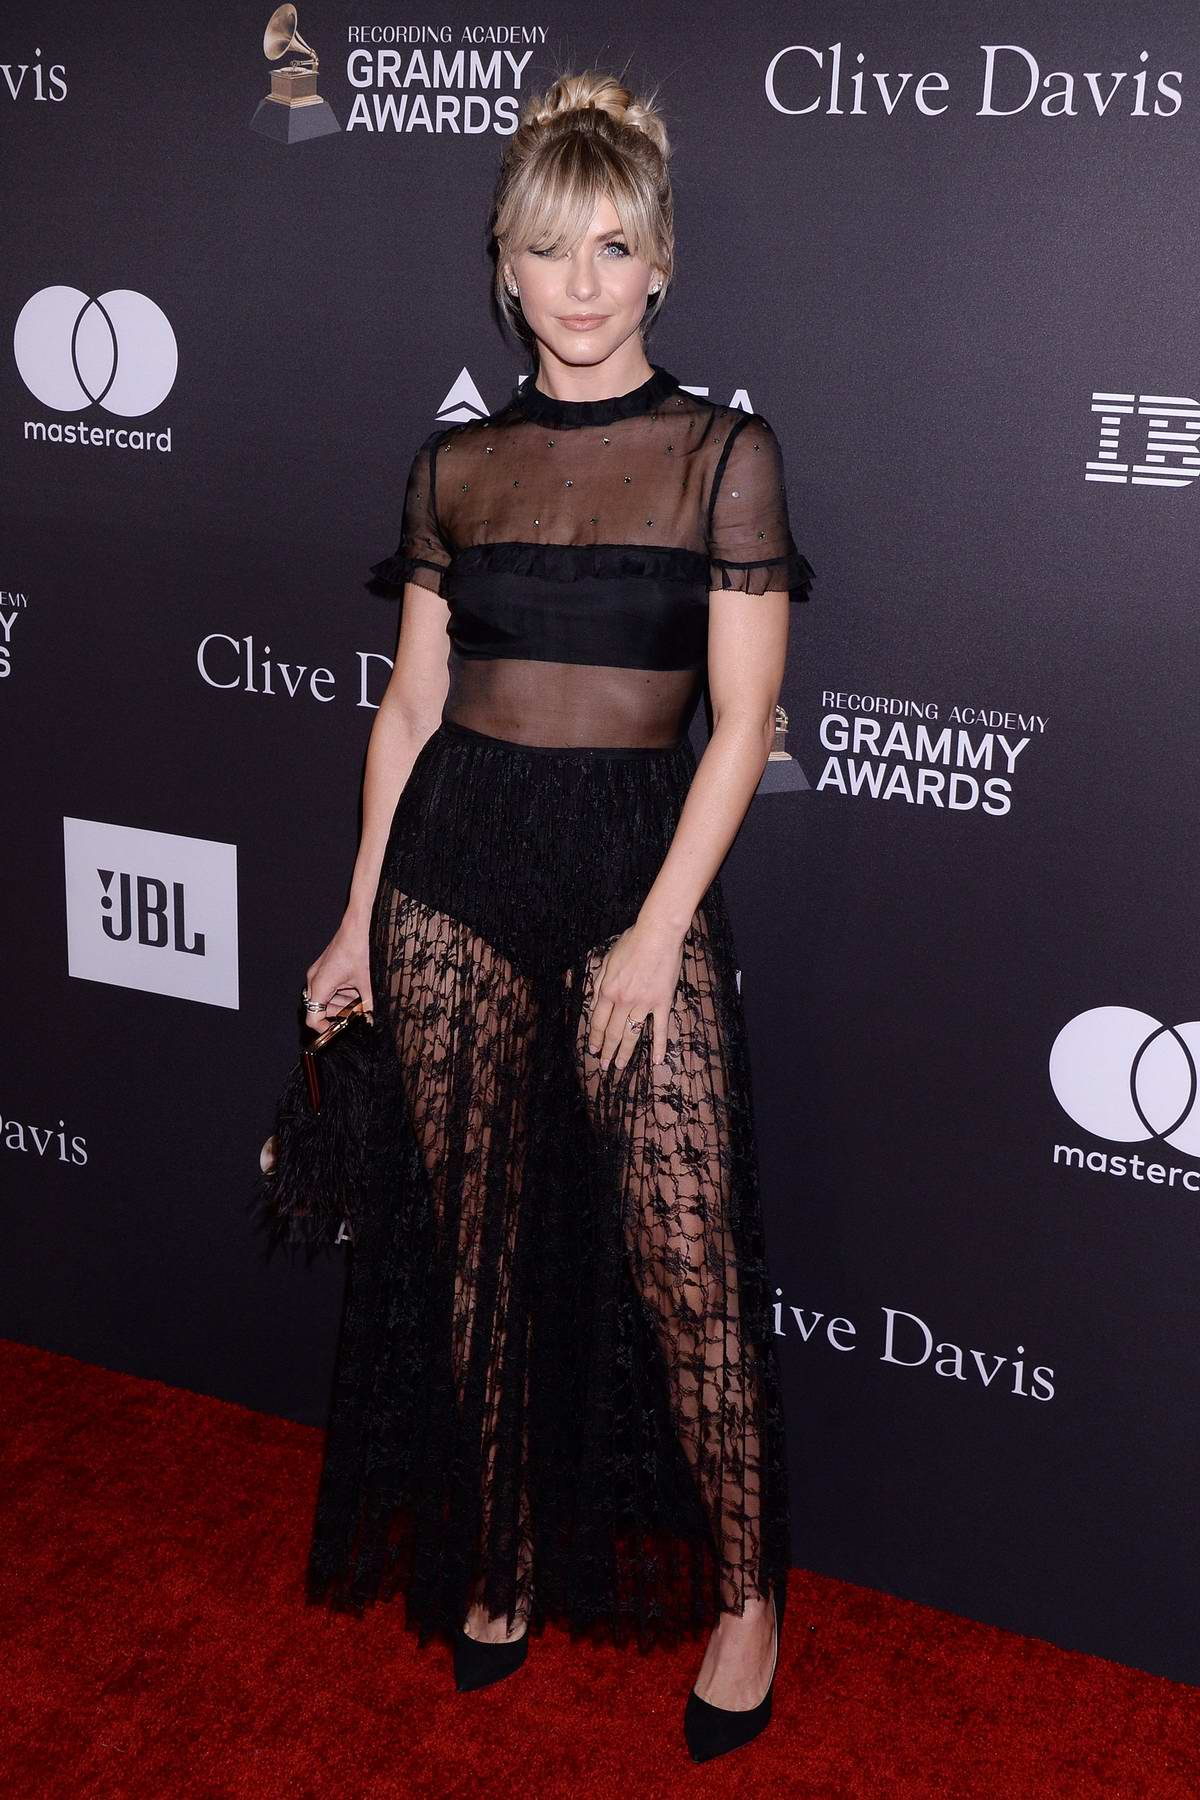 Julianne Hough attends the Clive Davis Pre-Grammy Gala and Salute to Industry Icons held at The Beverly Hilton in Los Angeles